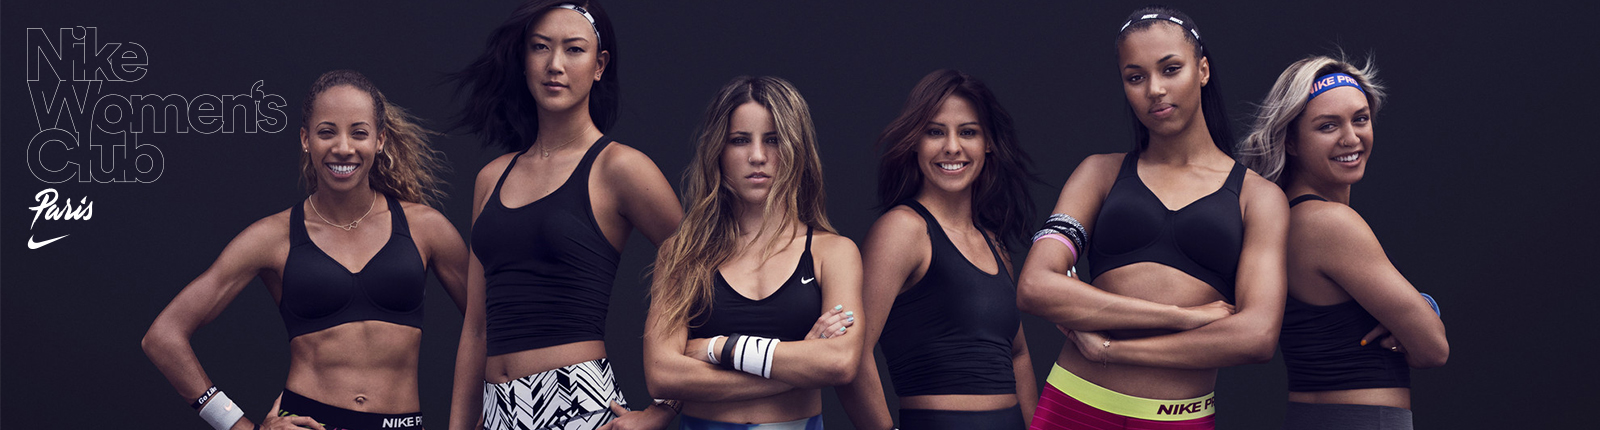 Nike Women Club Paris